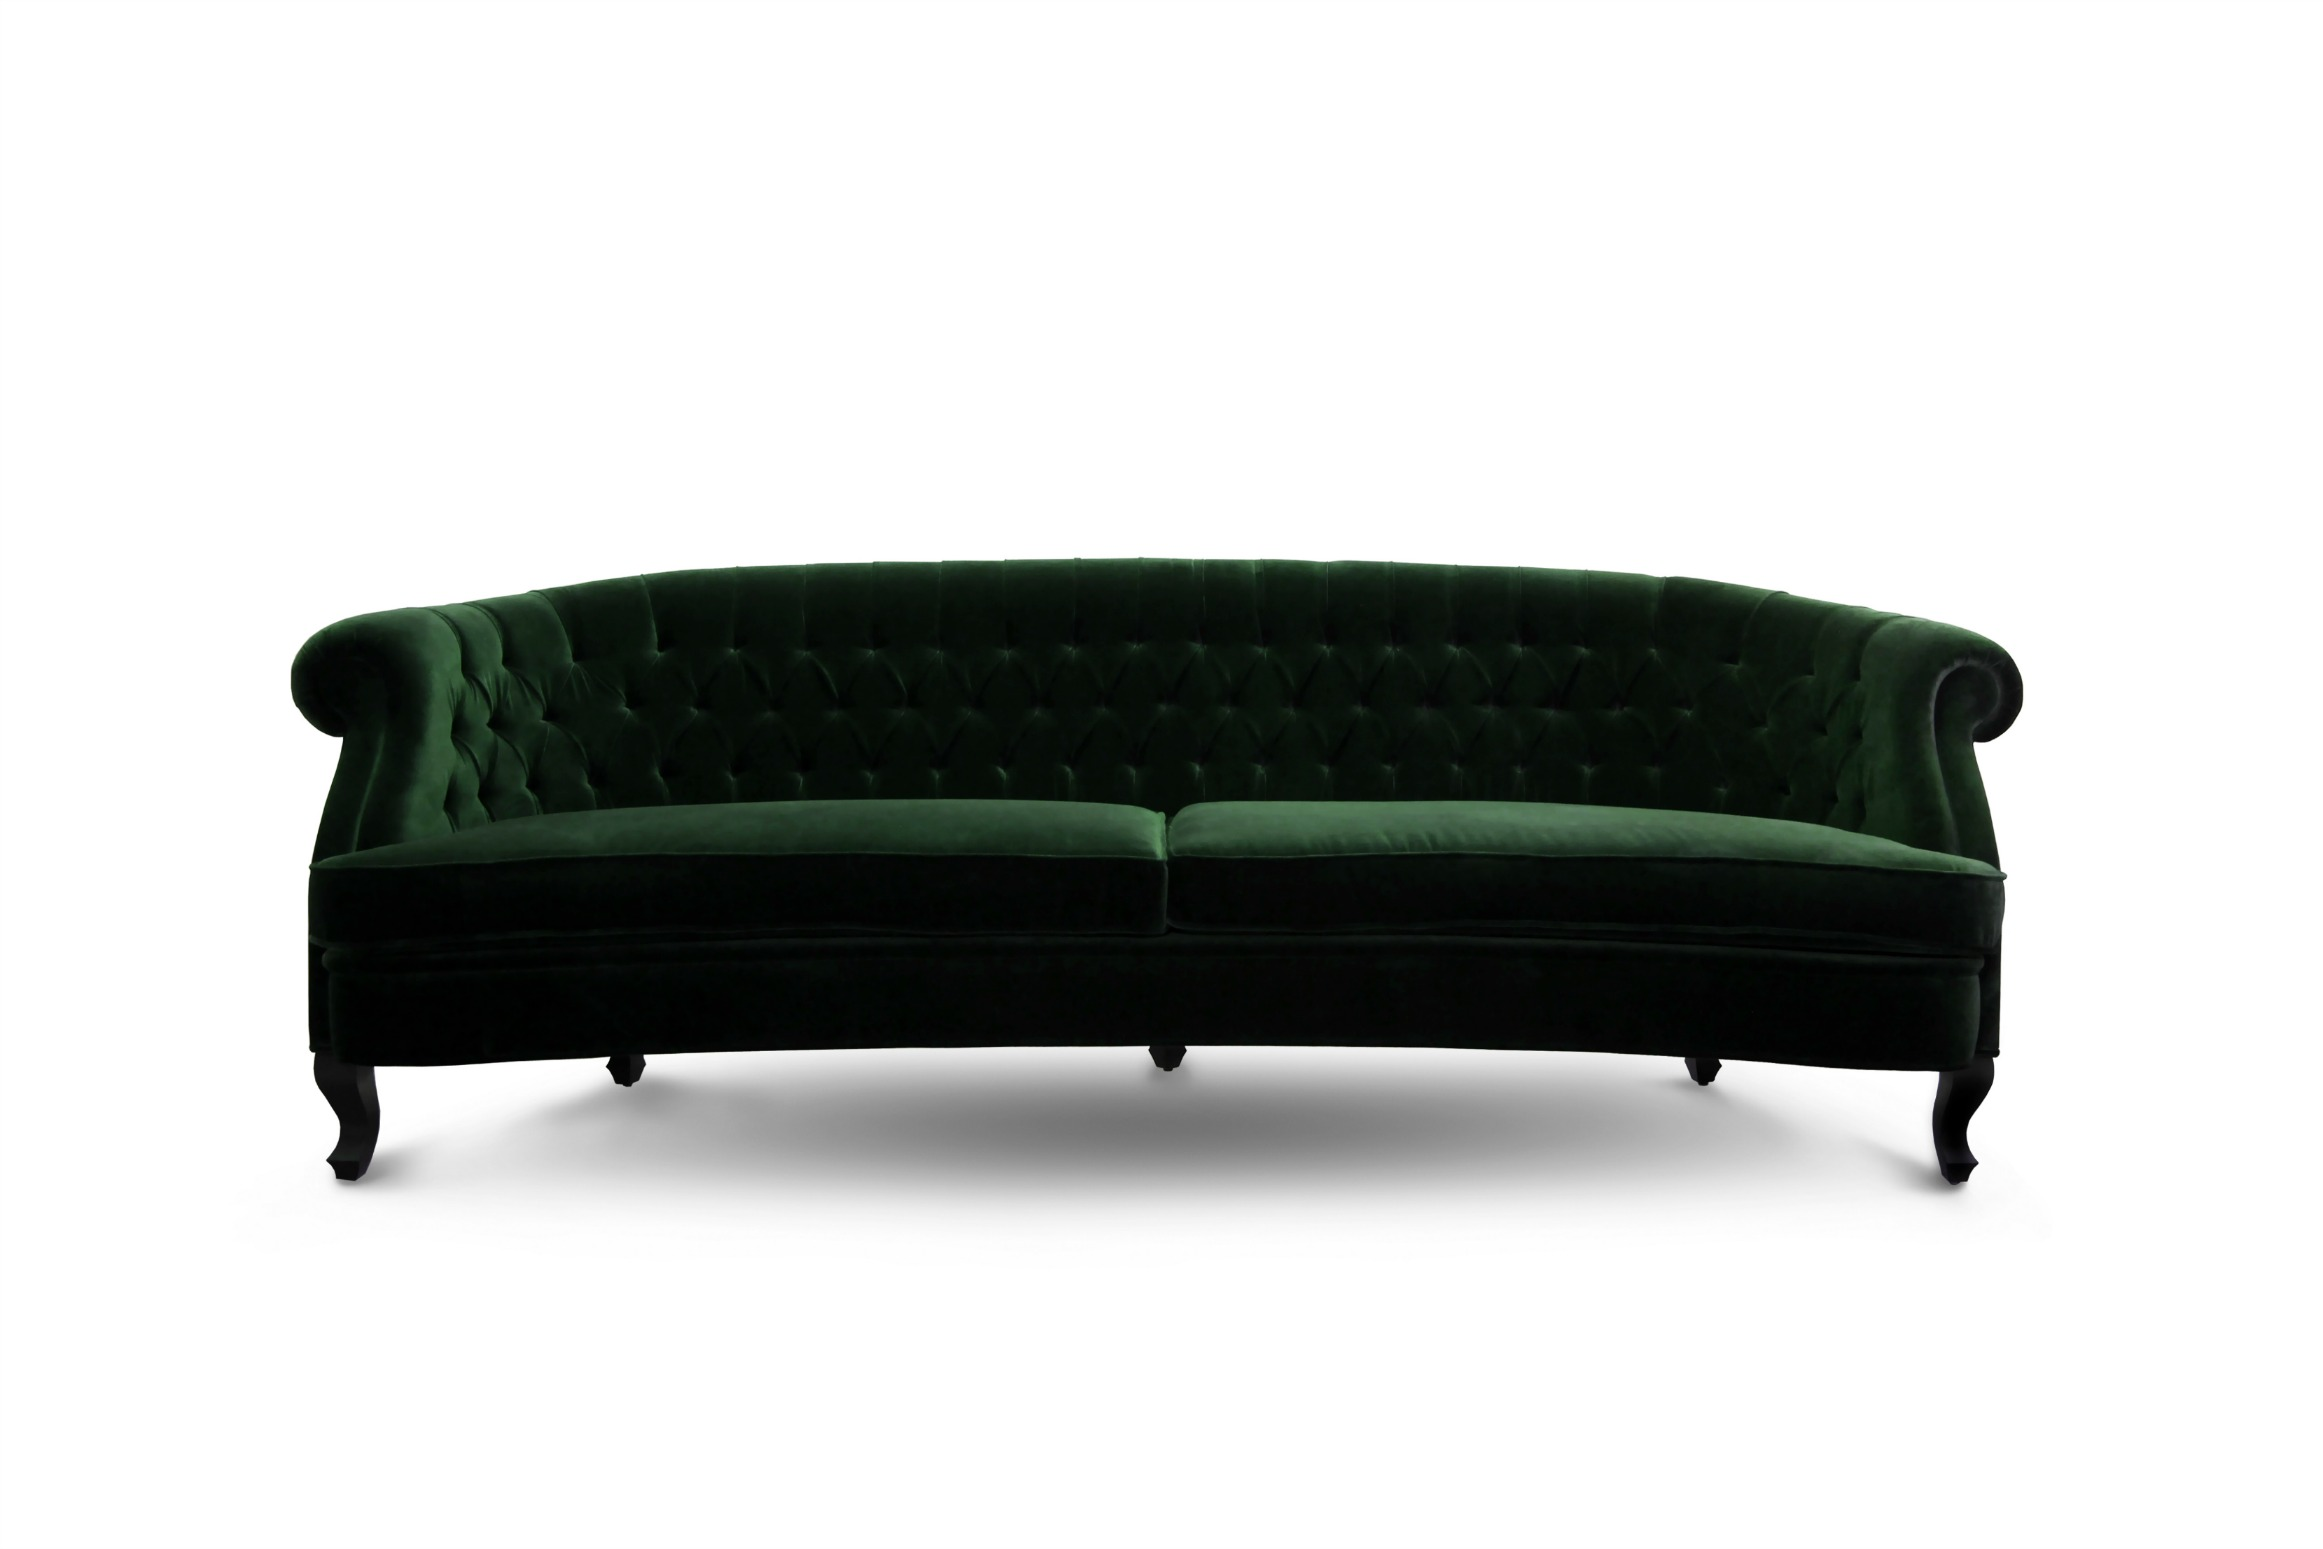 4 Green Sofas Ideas To Renovate Your Living Room green sofas 4 Green Sofas Ideas To Renovate Your Living Room maree sofa 4 HR